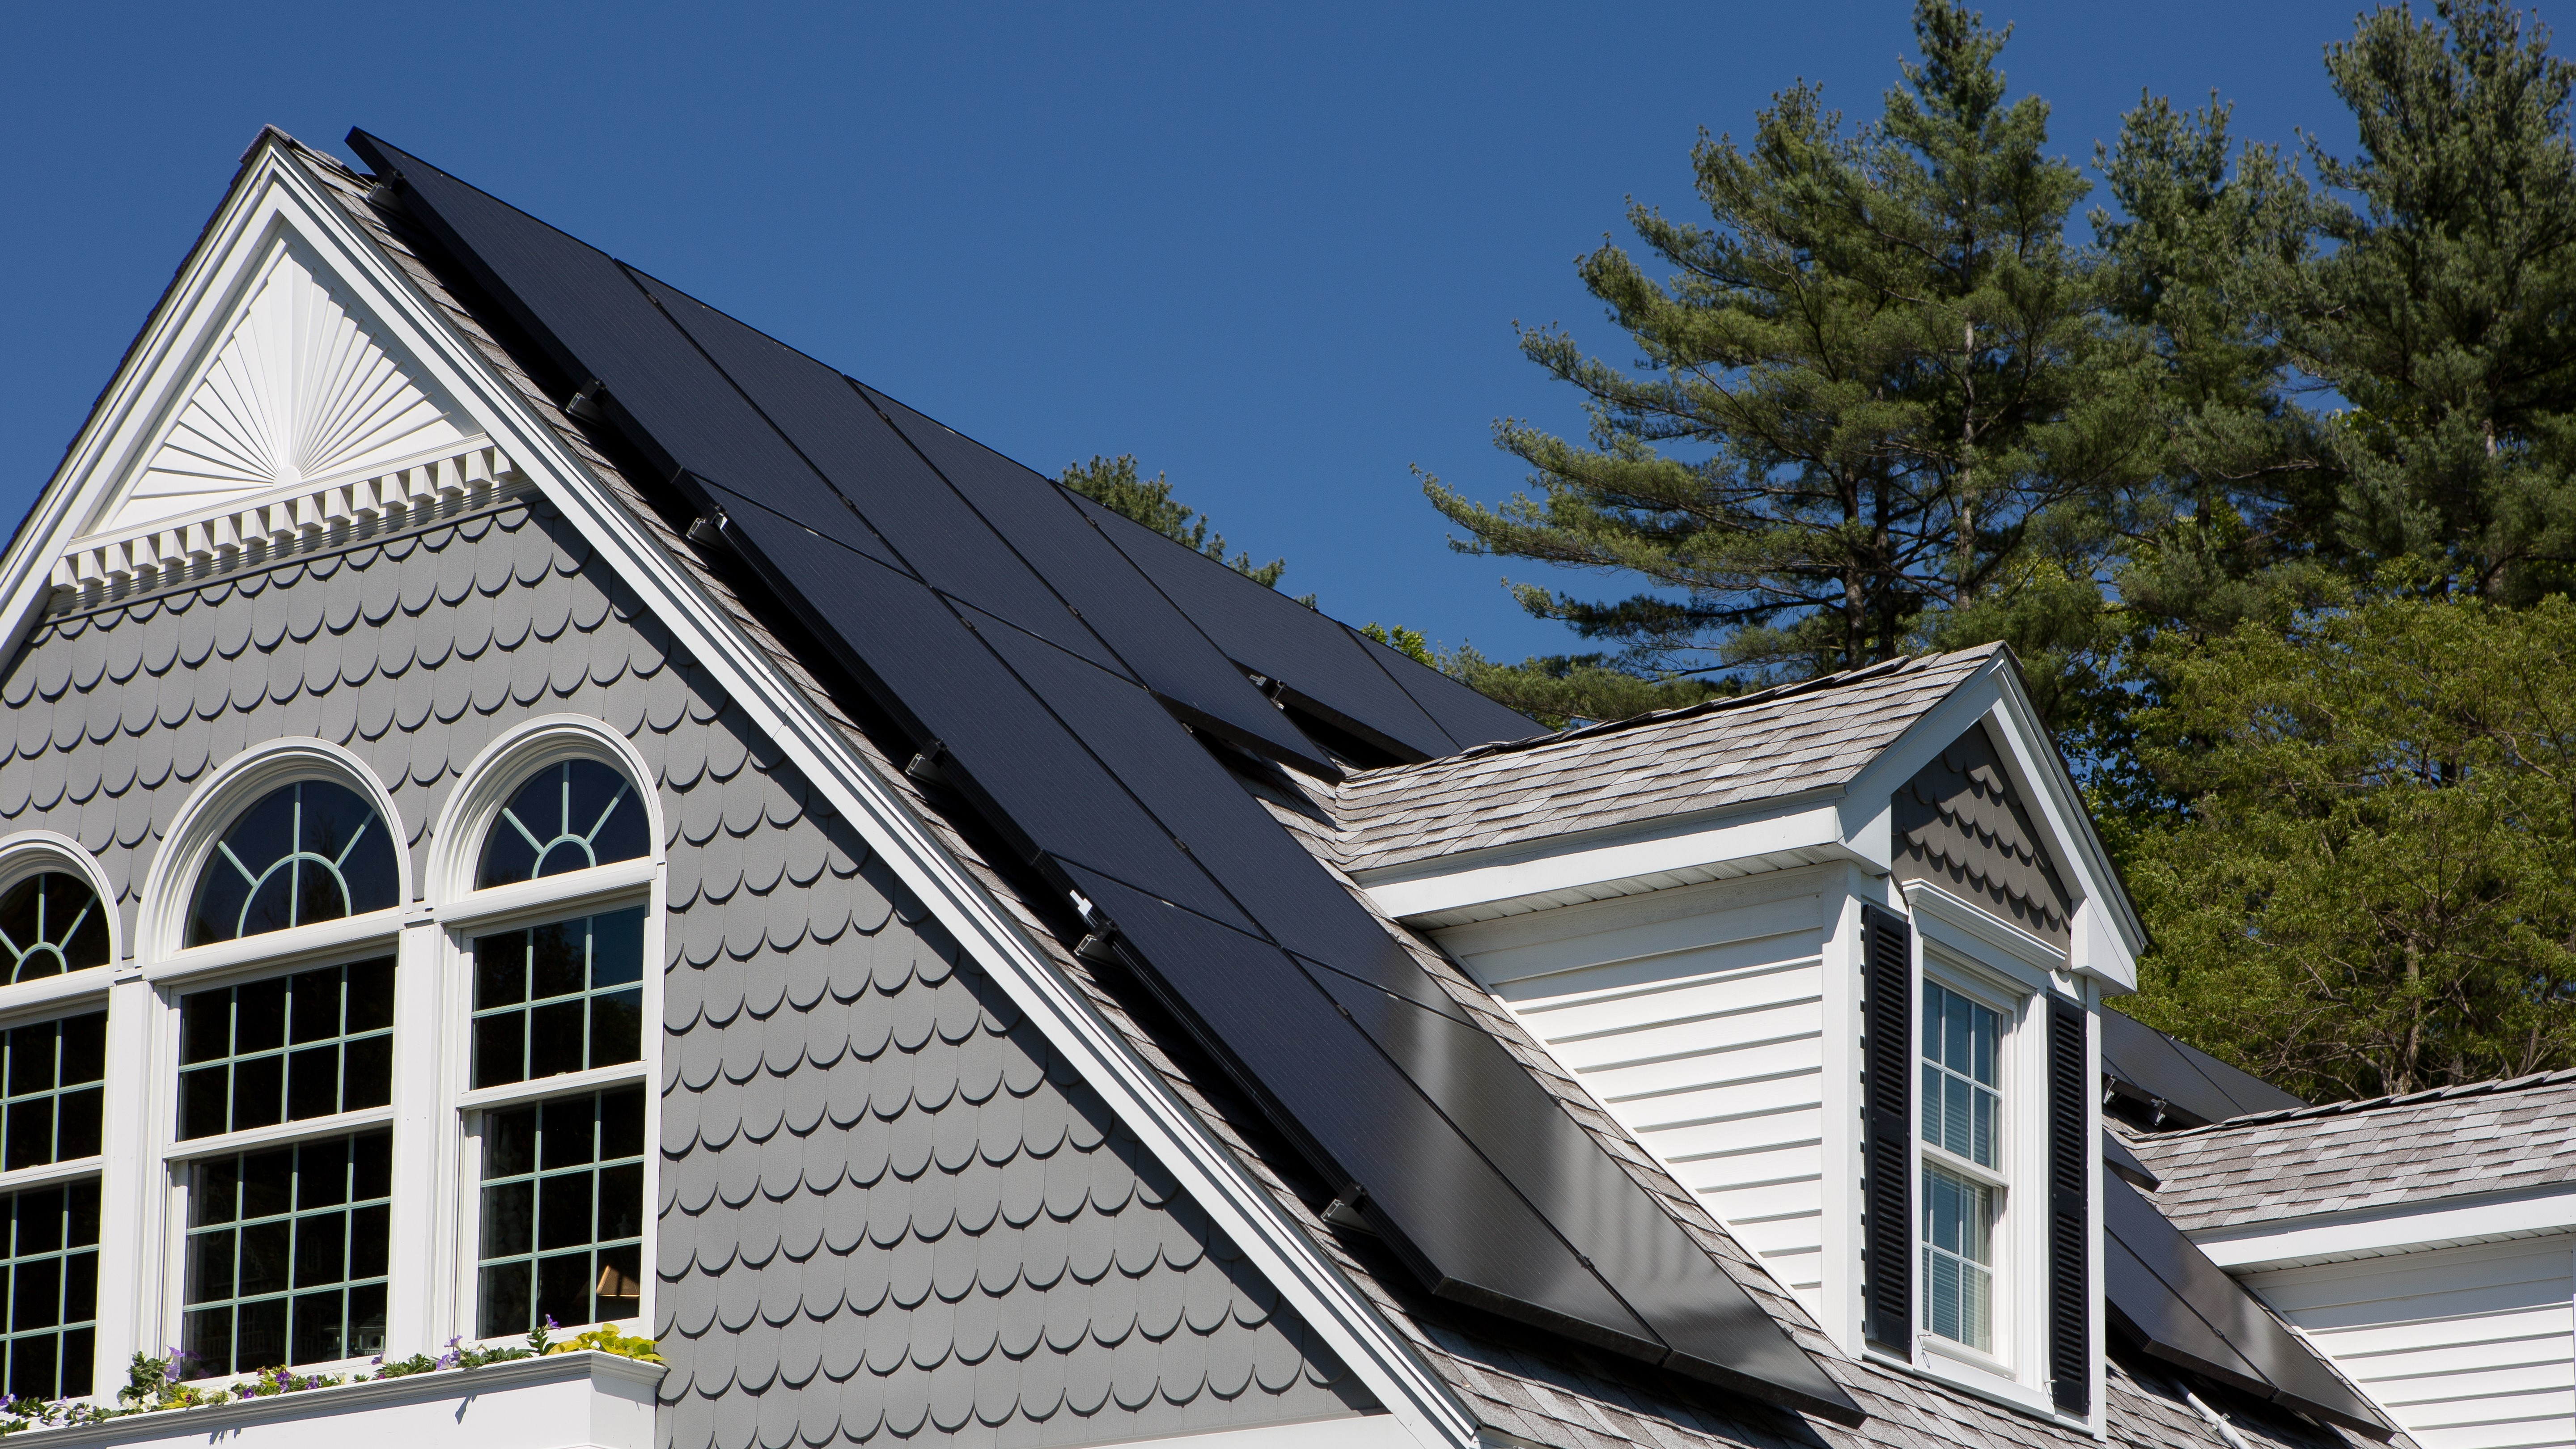 Most Efficient Solar Panels for Your Home